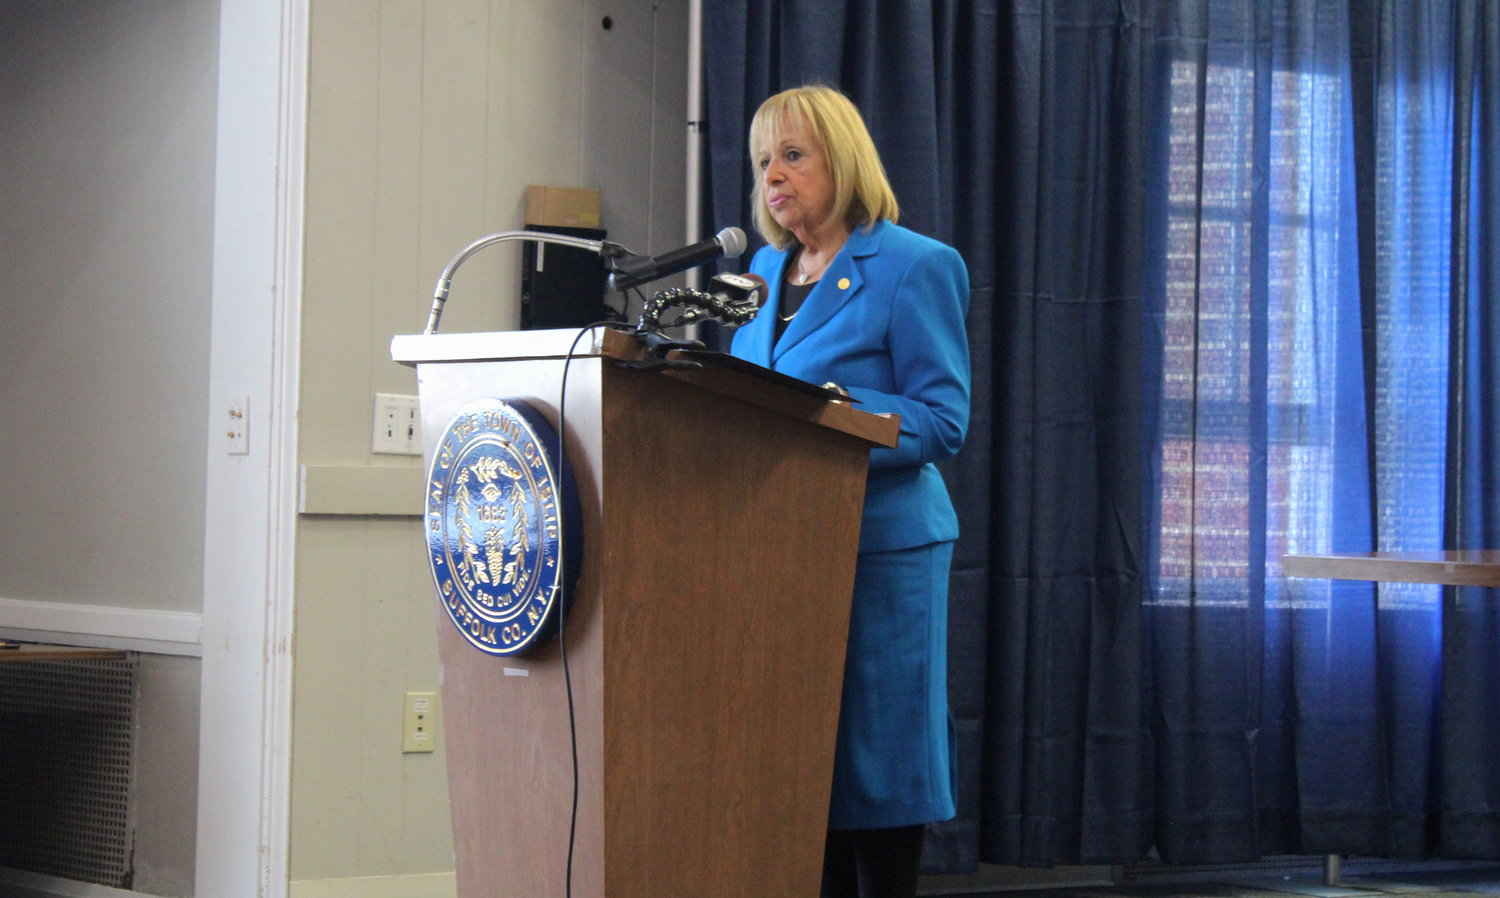 Islip Town supervisor Angie Carpenter gives her State of the Town address at Islip Town Hall on April 21.